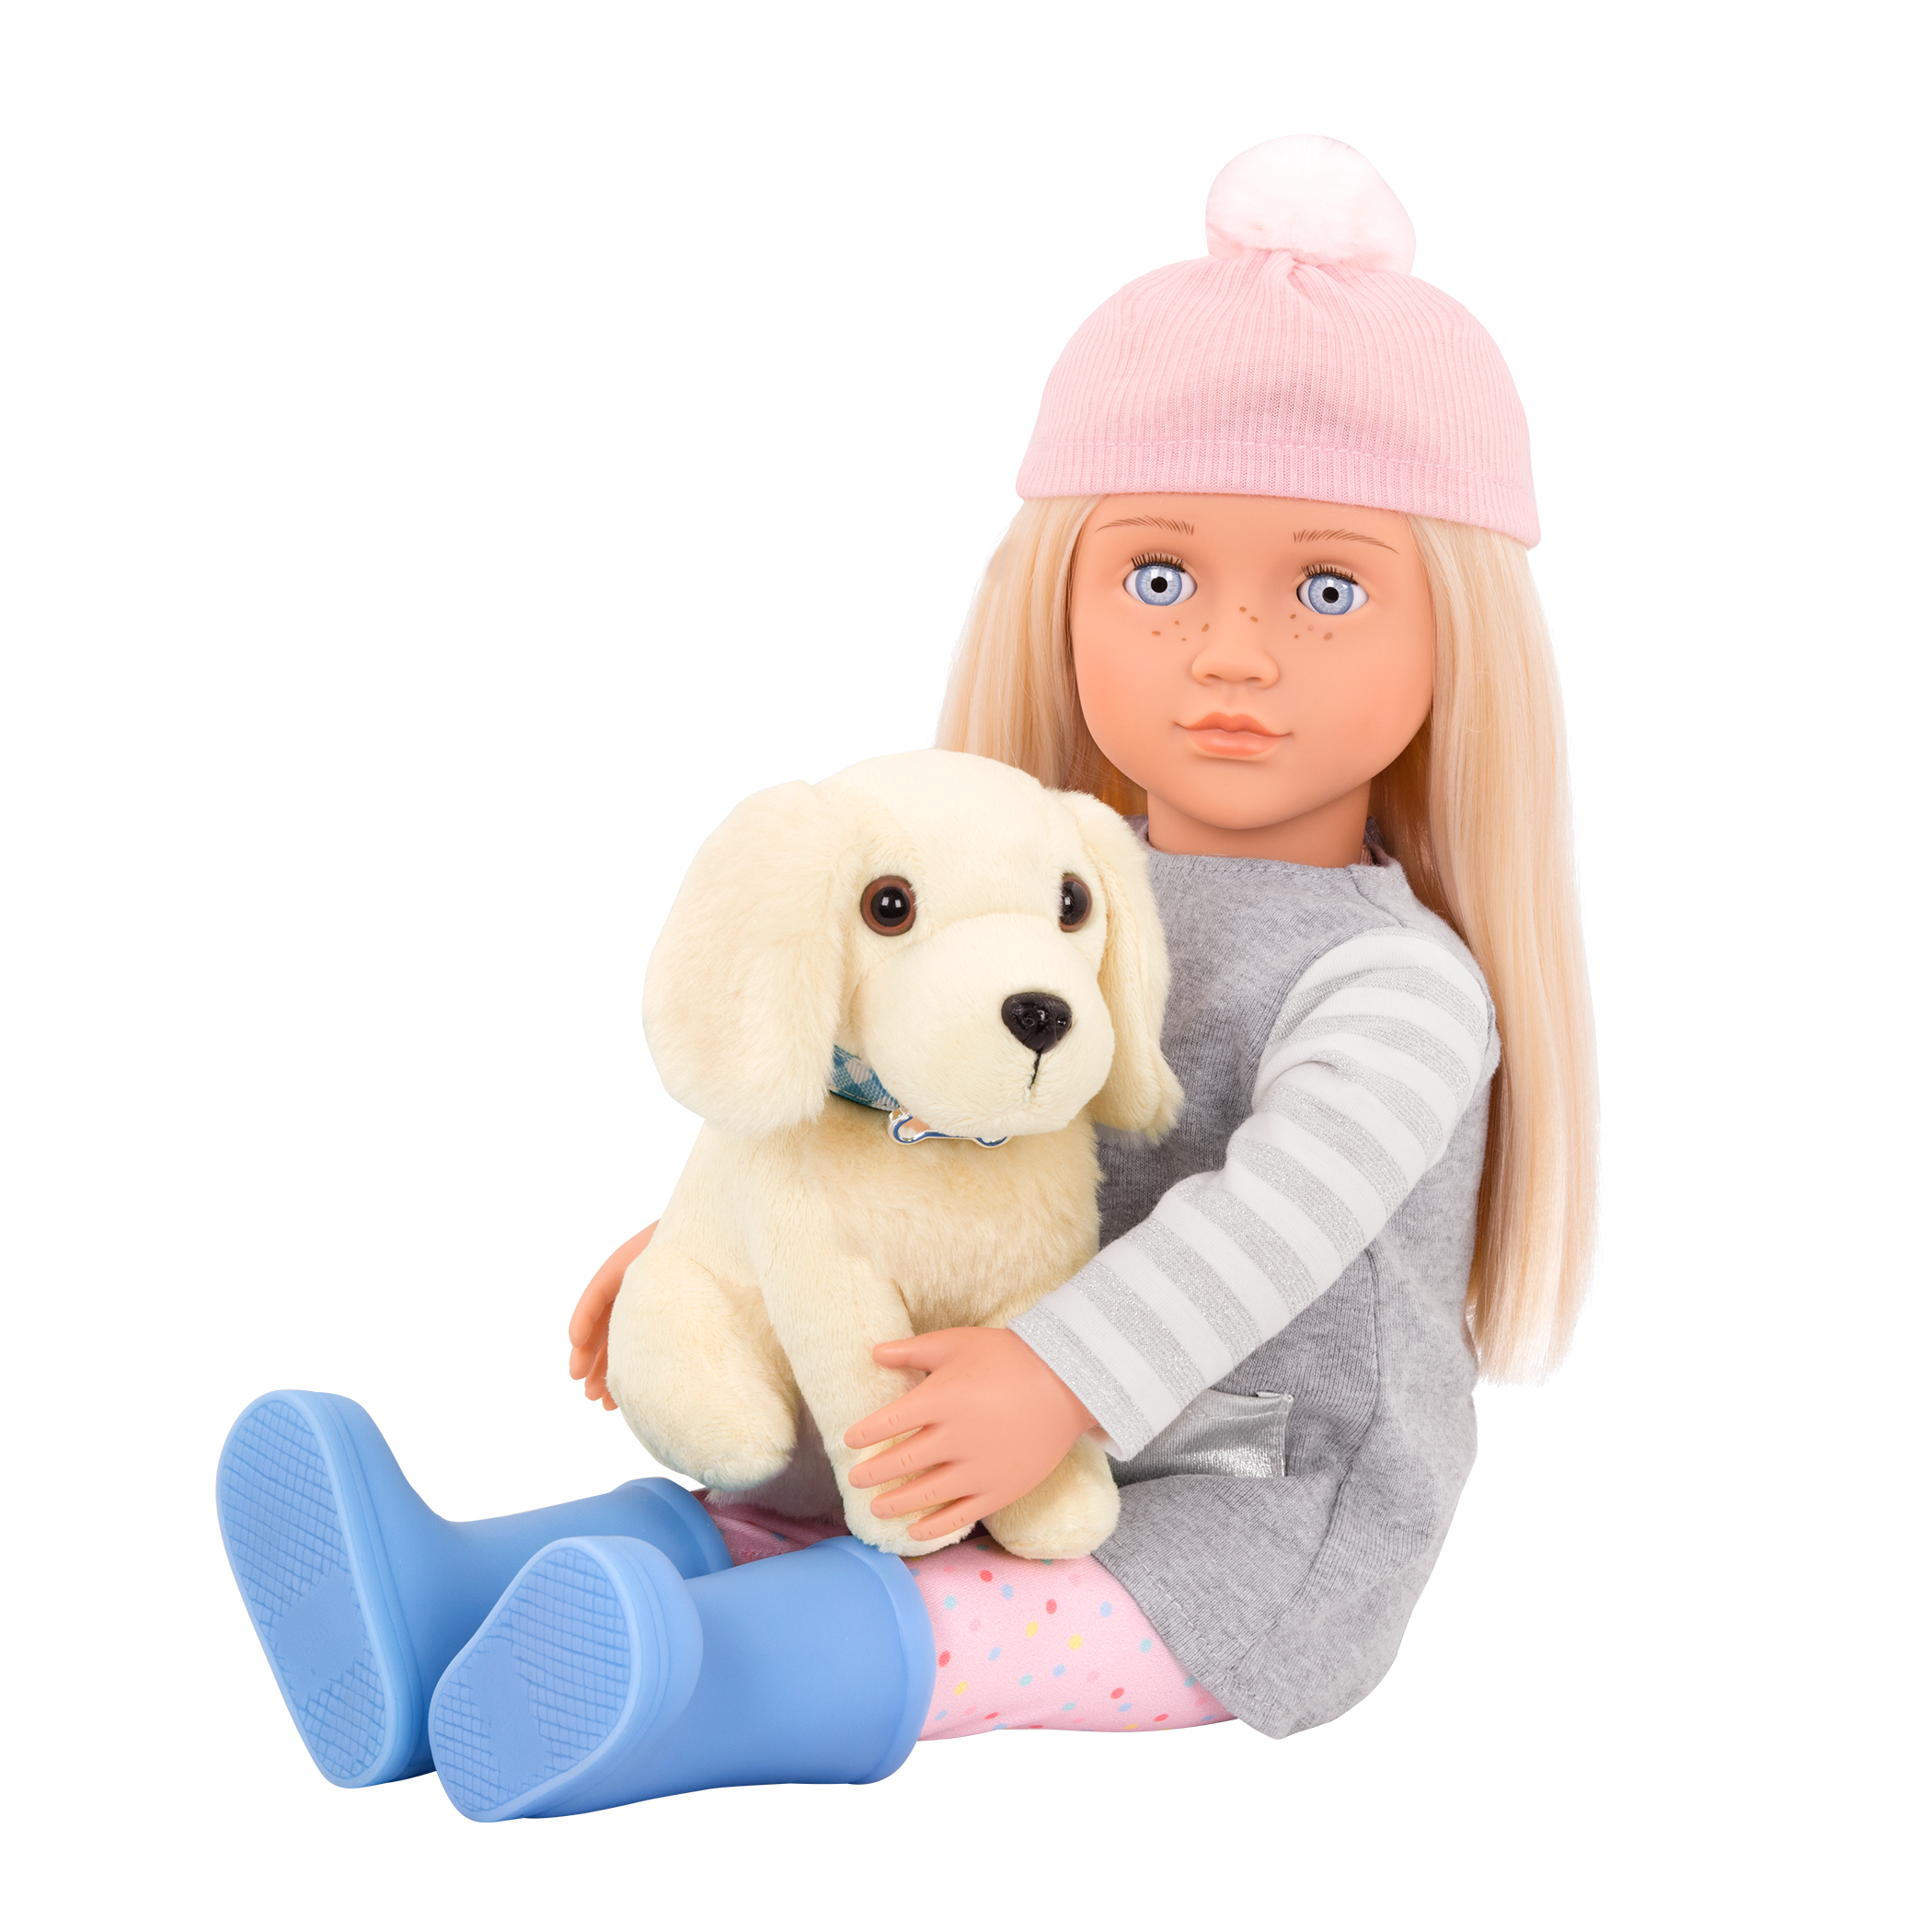 Meagan sitting with Golden Retriever in her lap